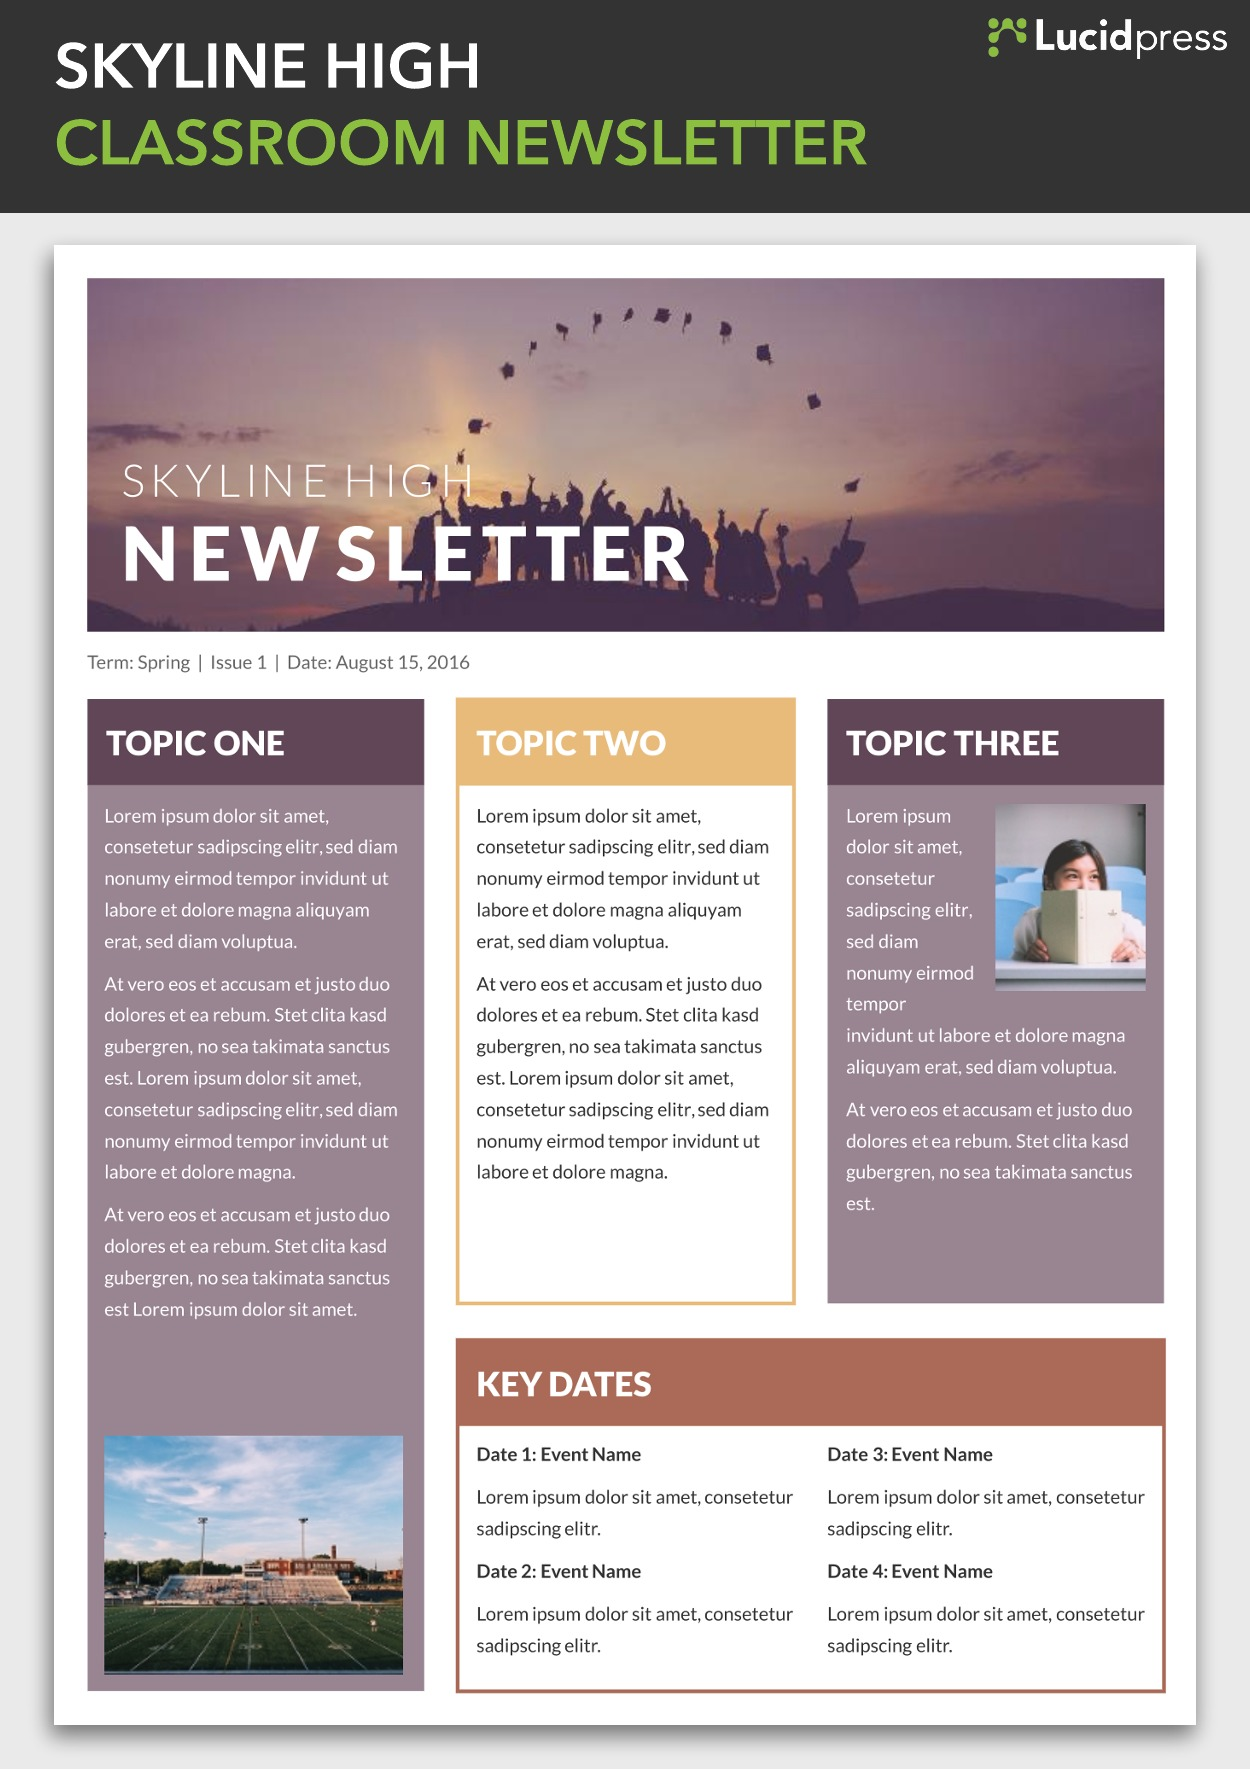 skyline high classroom newsletter template - Newsletter Design Ideas